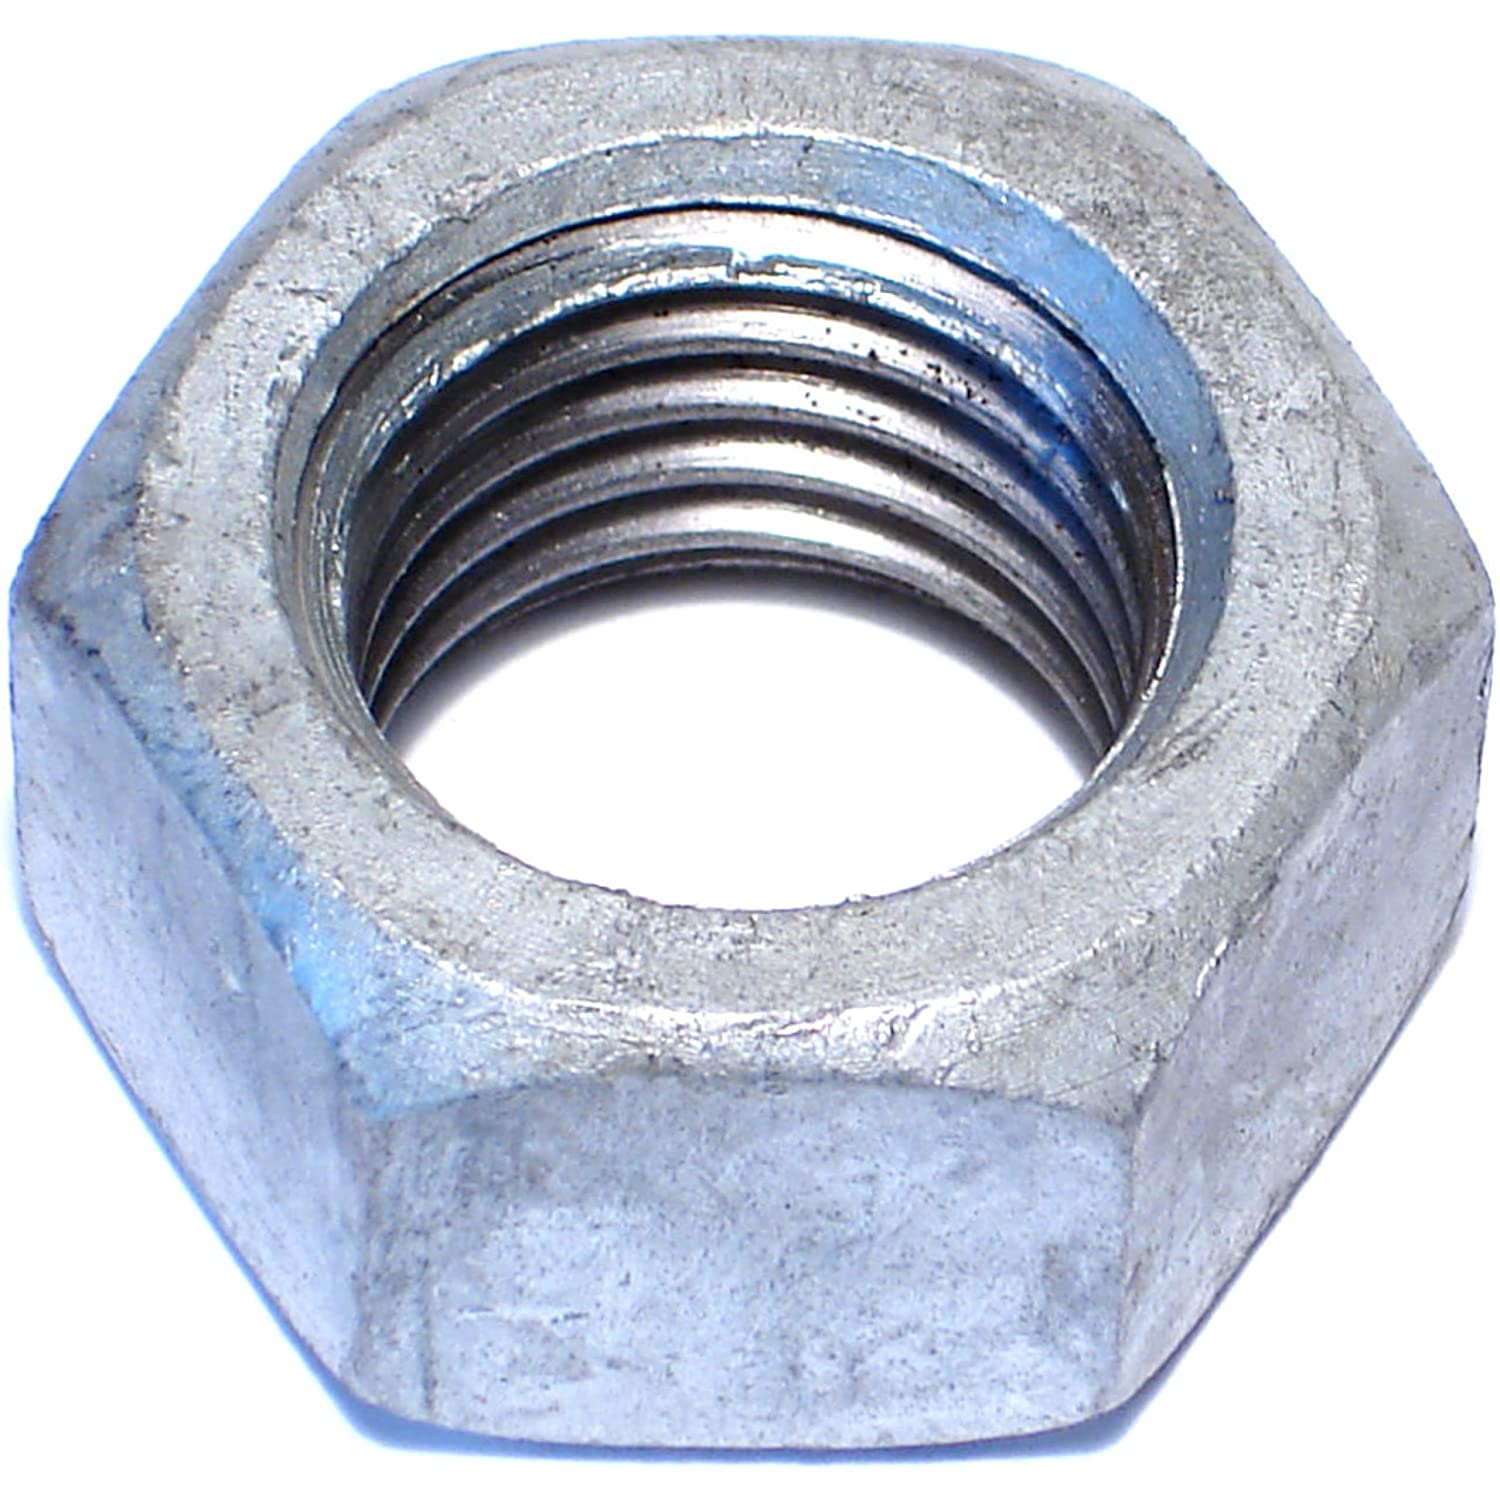 Piece-90 1-8 Hard-to-Find Fastener 014973148669 Coarse Finished Hex Nuts